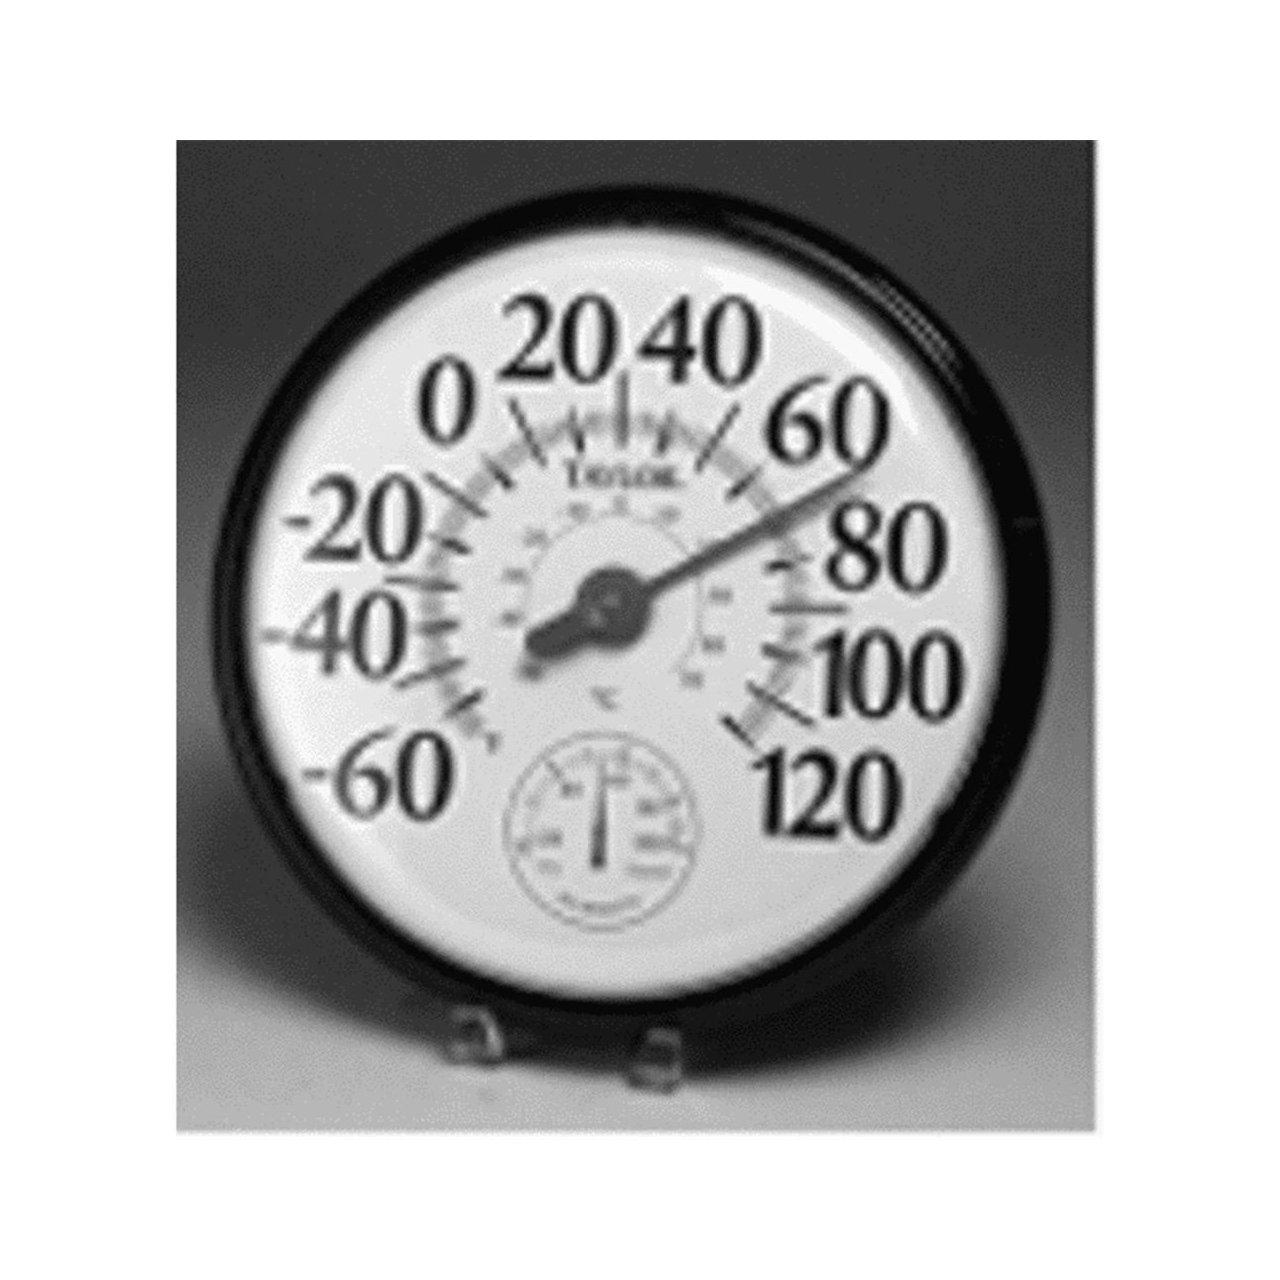 Amazon taylor precision 6712n image gallery outdoor wall amazon taylor precision 6712n image gallery outdoor wall thermometer and humidity guide home improvement amipublicfo Gallery